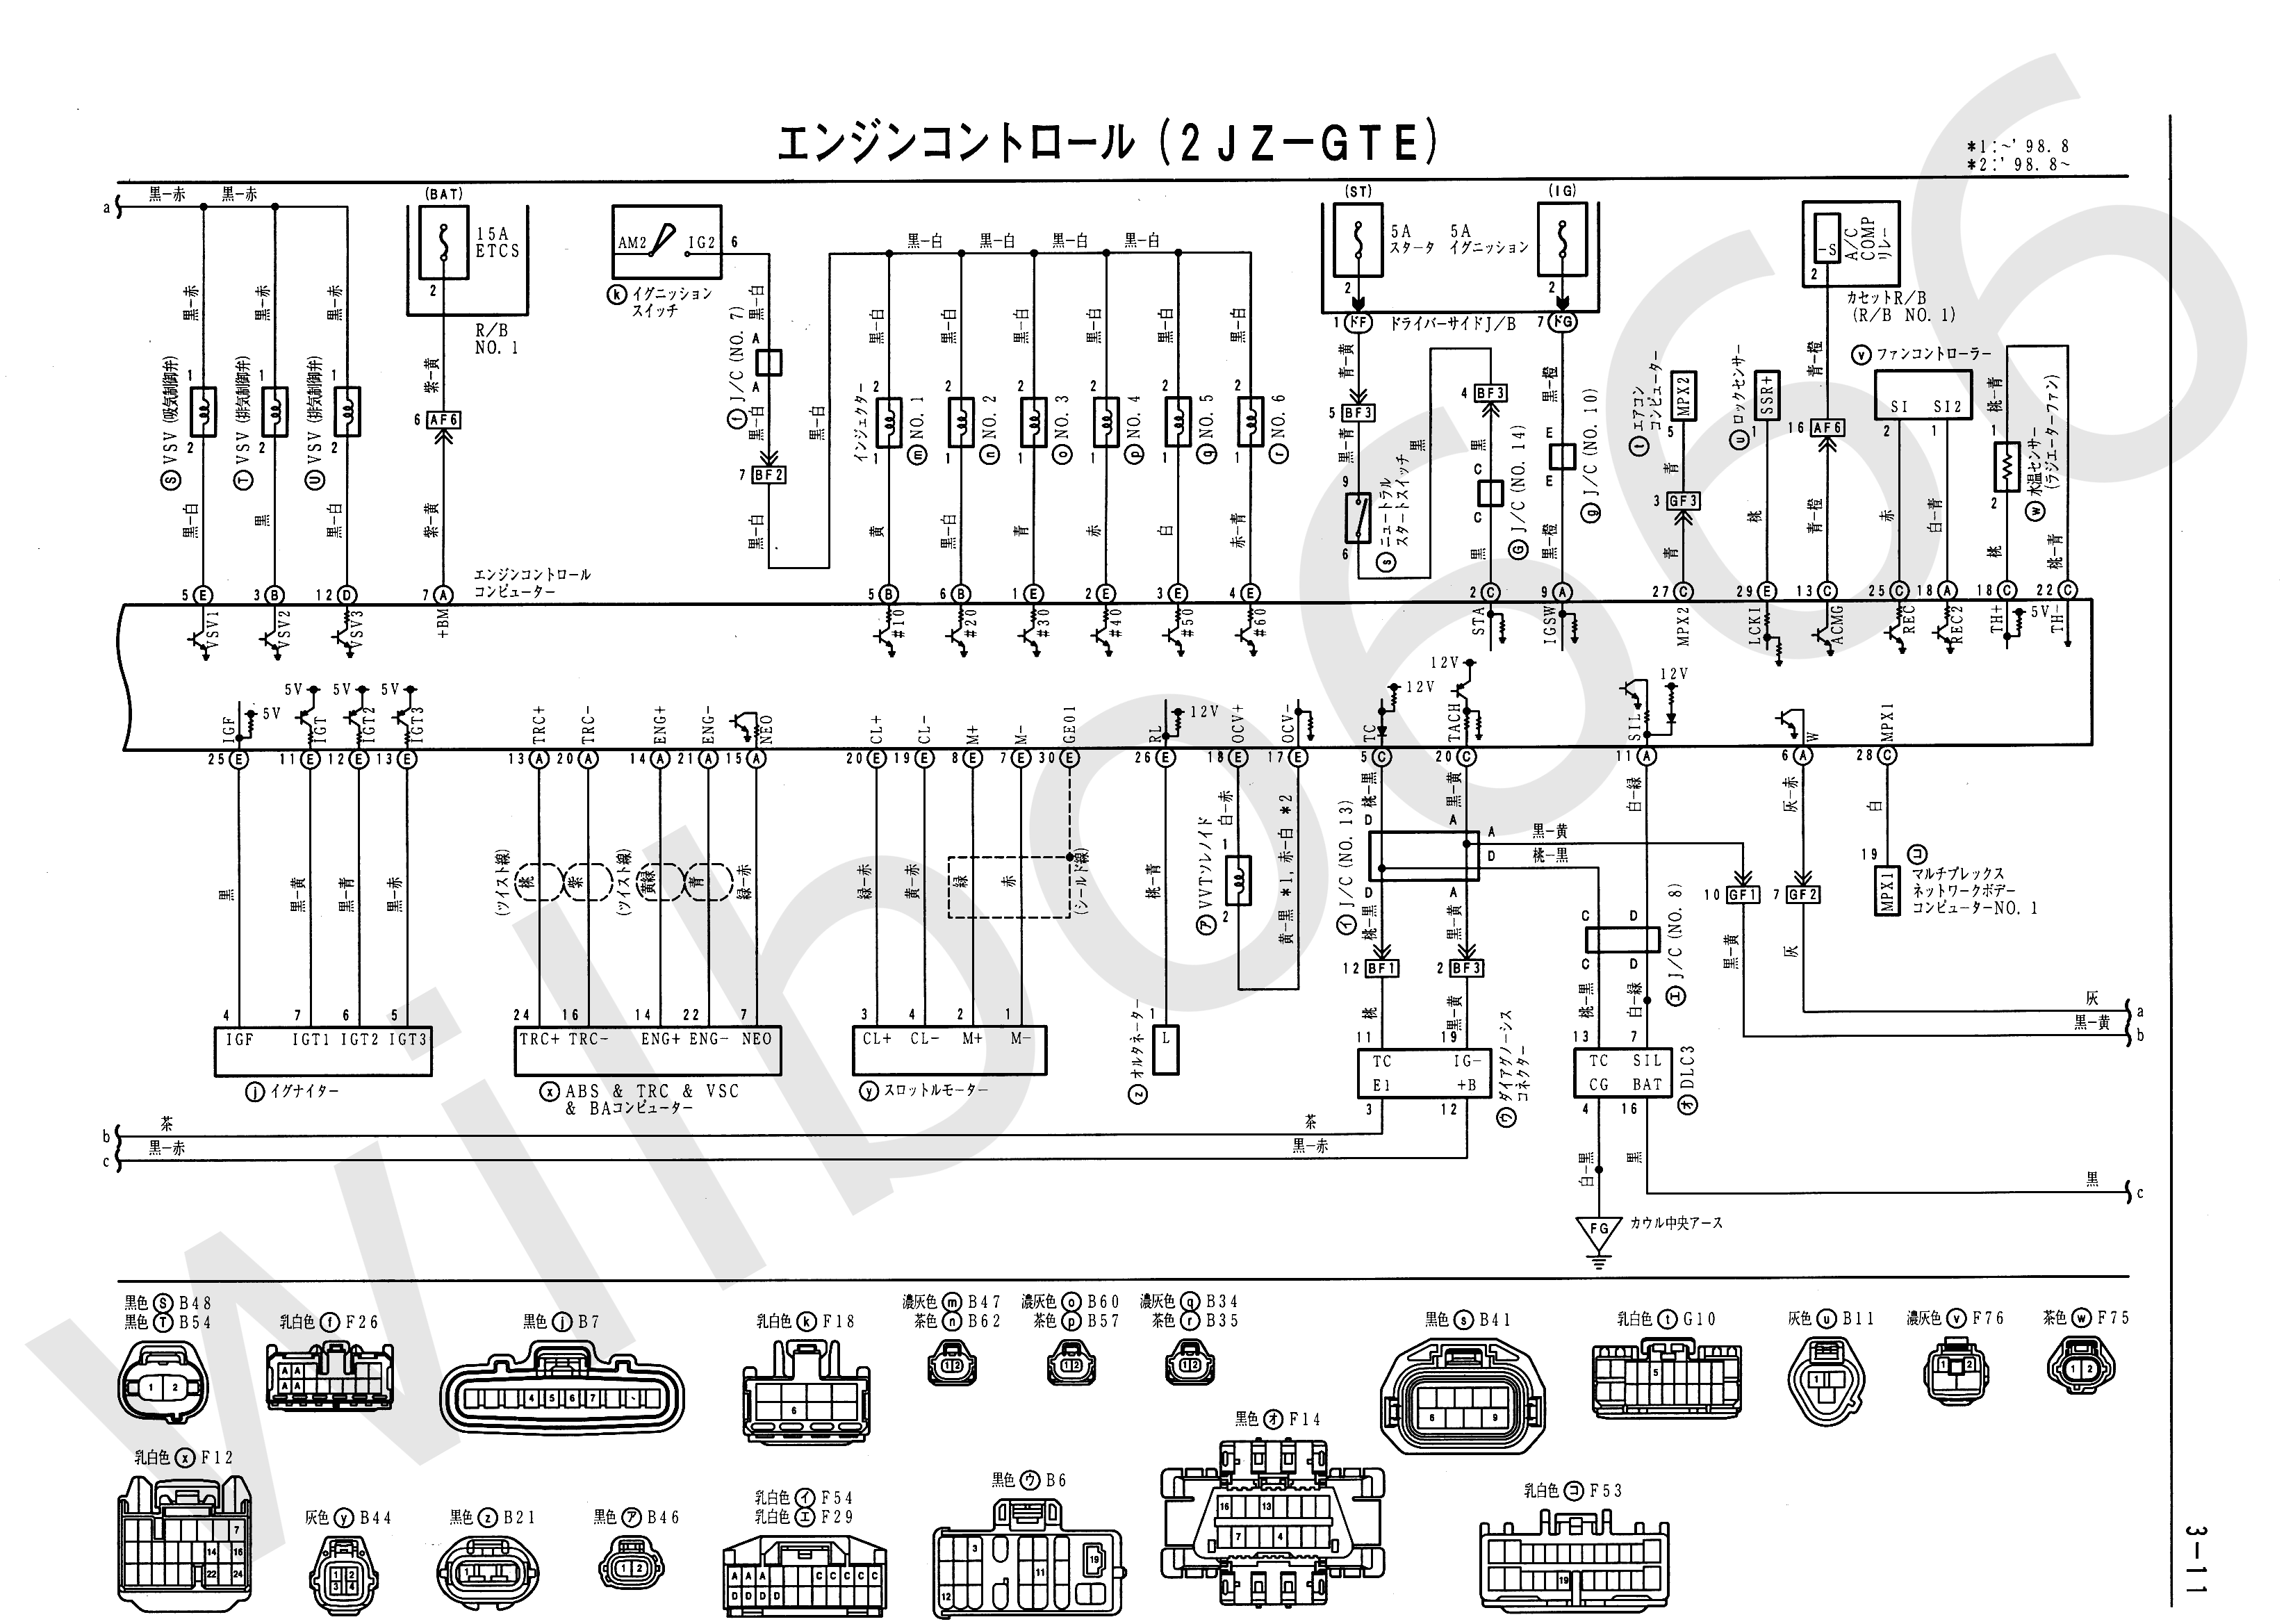 JZS161 Electrical Wiring Diagram 6748505 3 11 2jz ge wiring diagram pdf wiring diagram simonand 1jz s13 wiring harness at soozxer.org